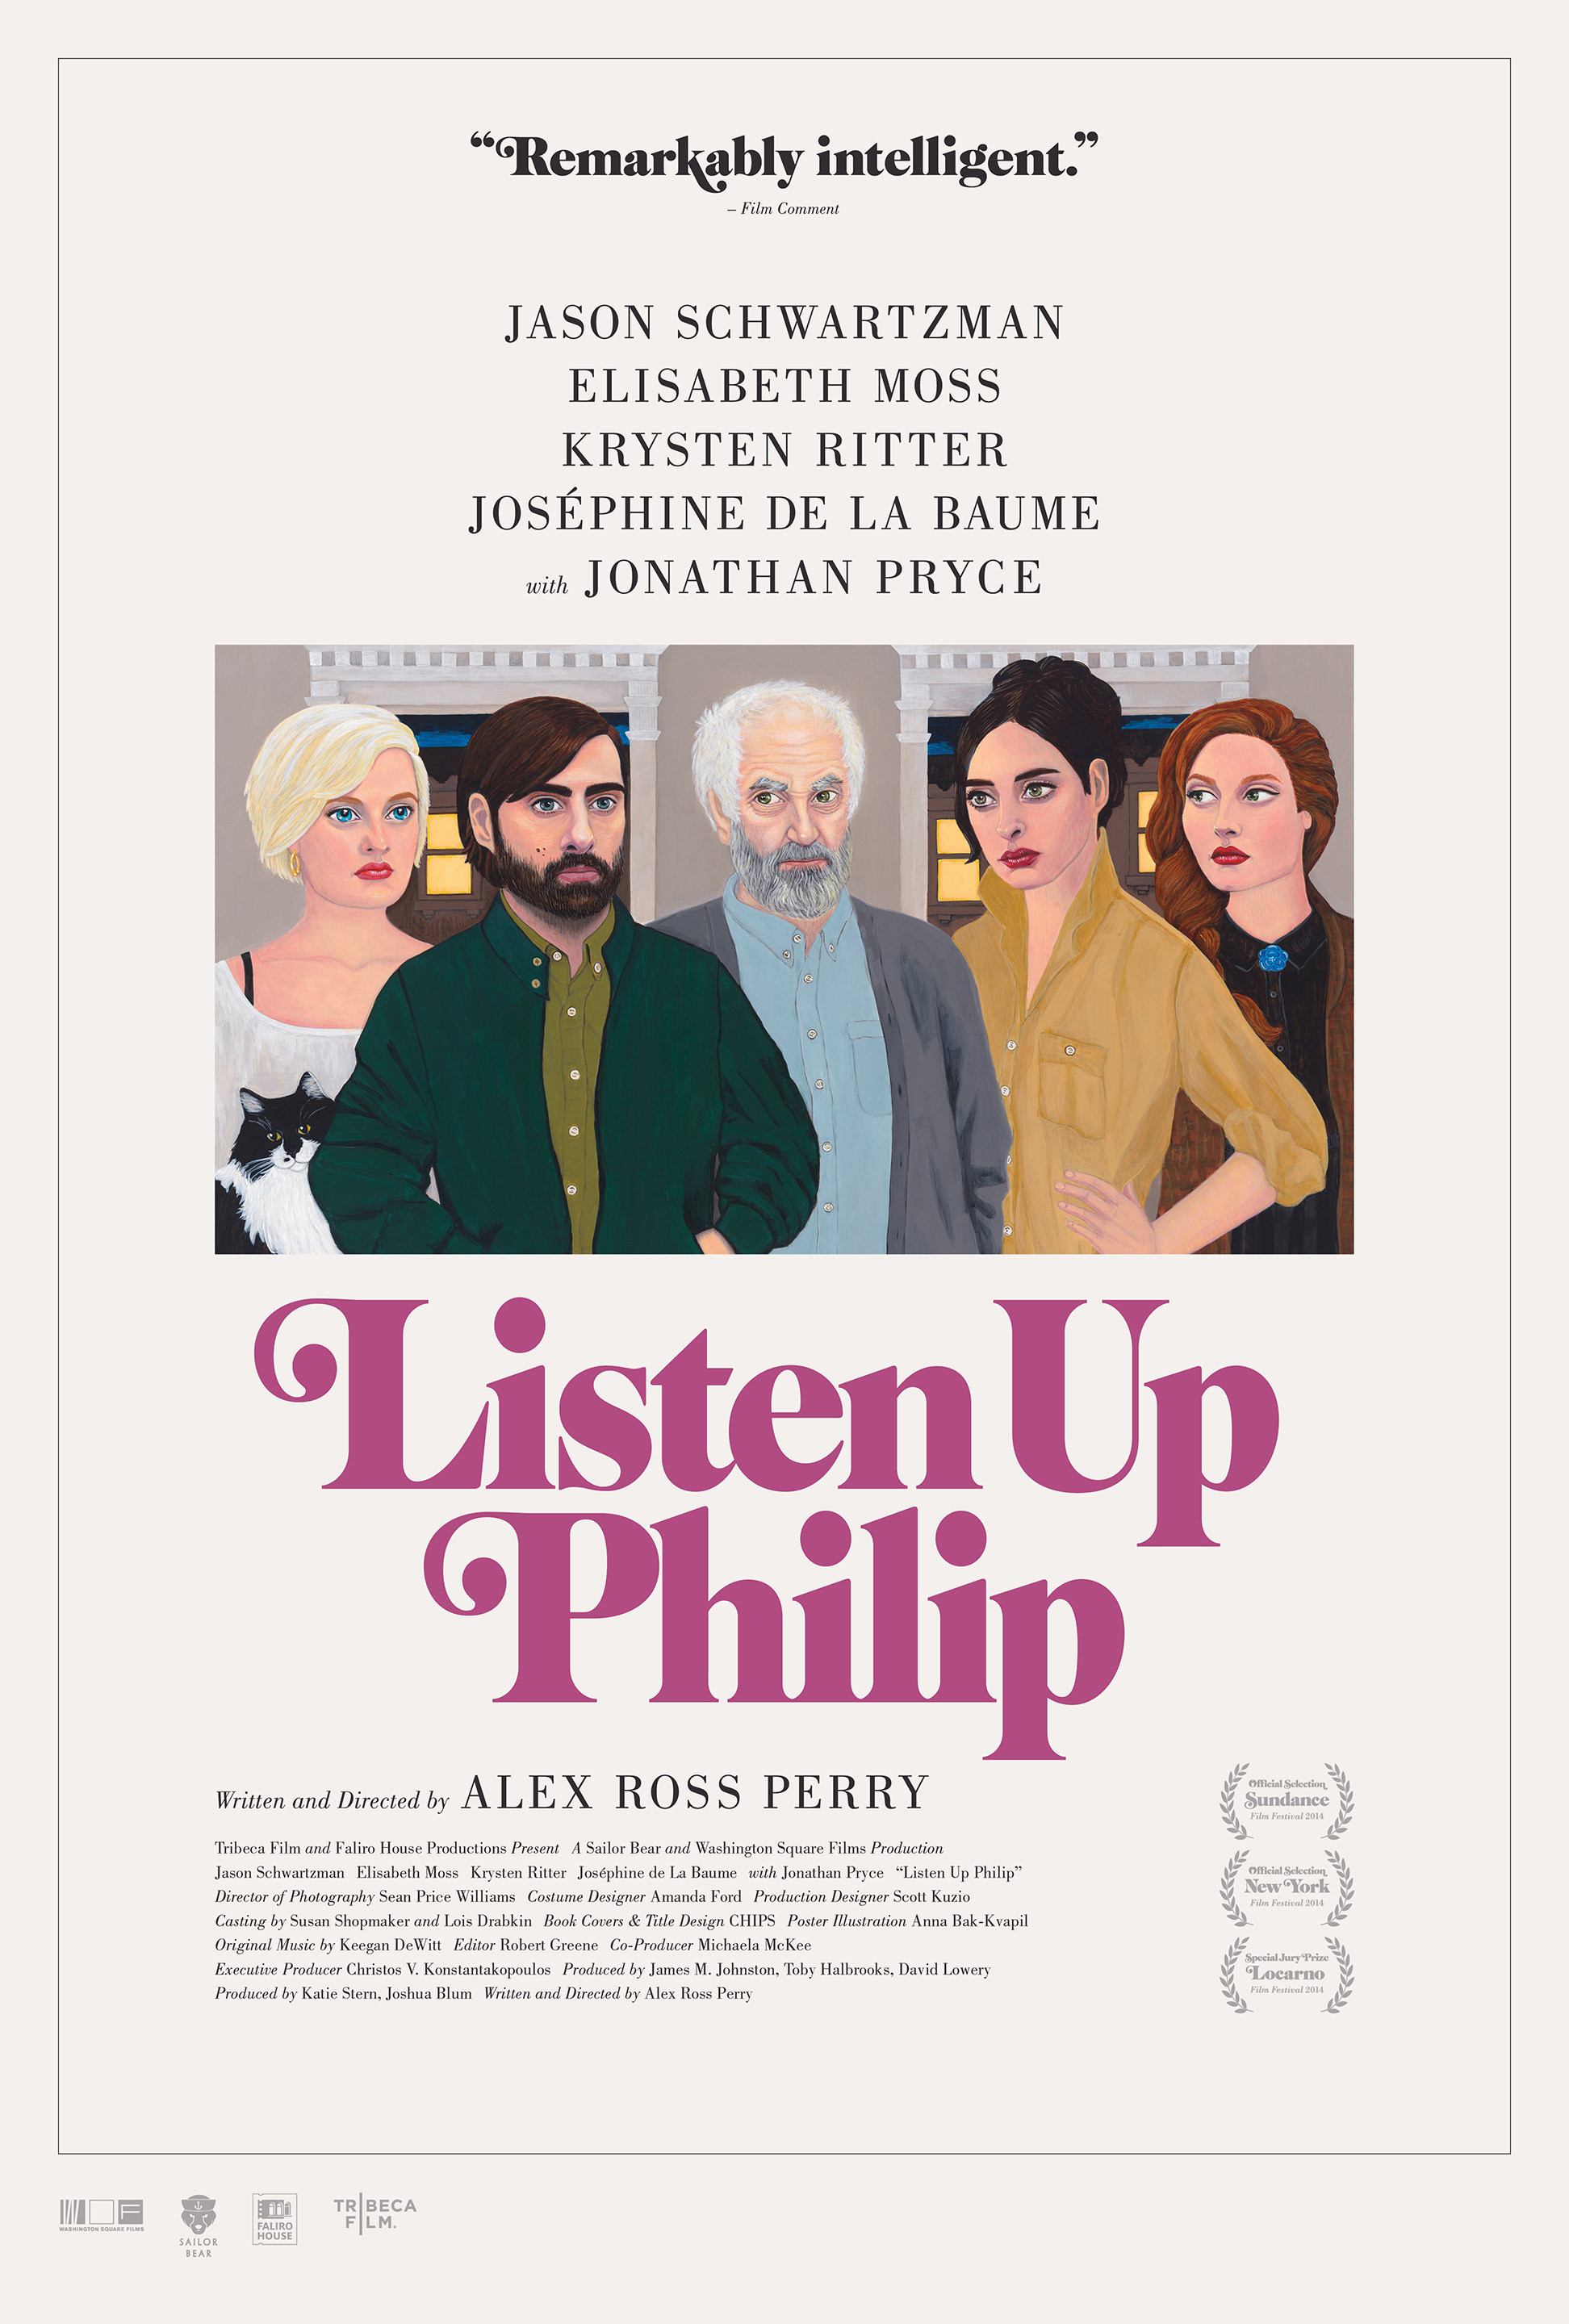 Vainglory Lives in 'Listen Up Philip'